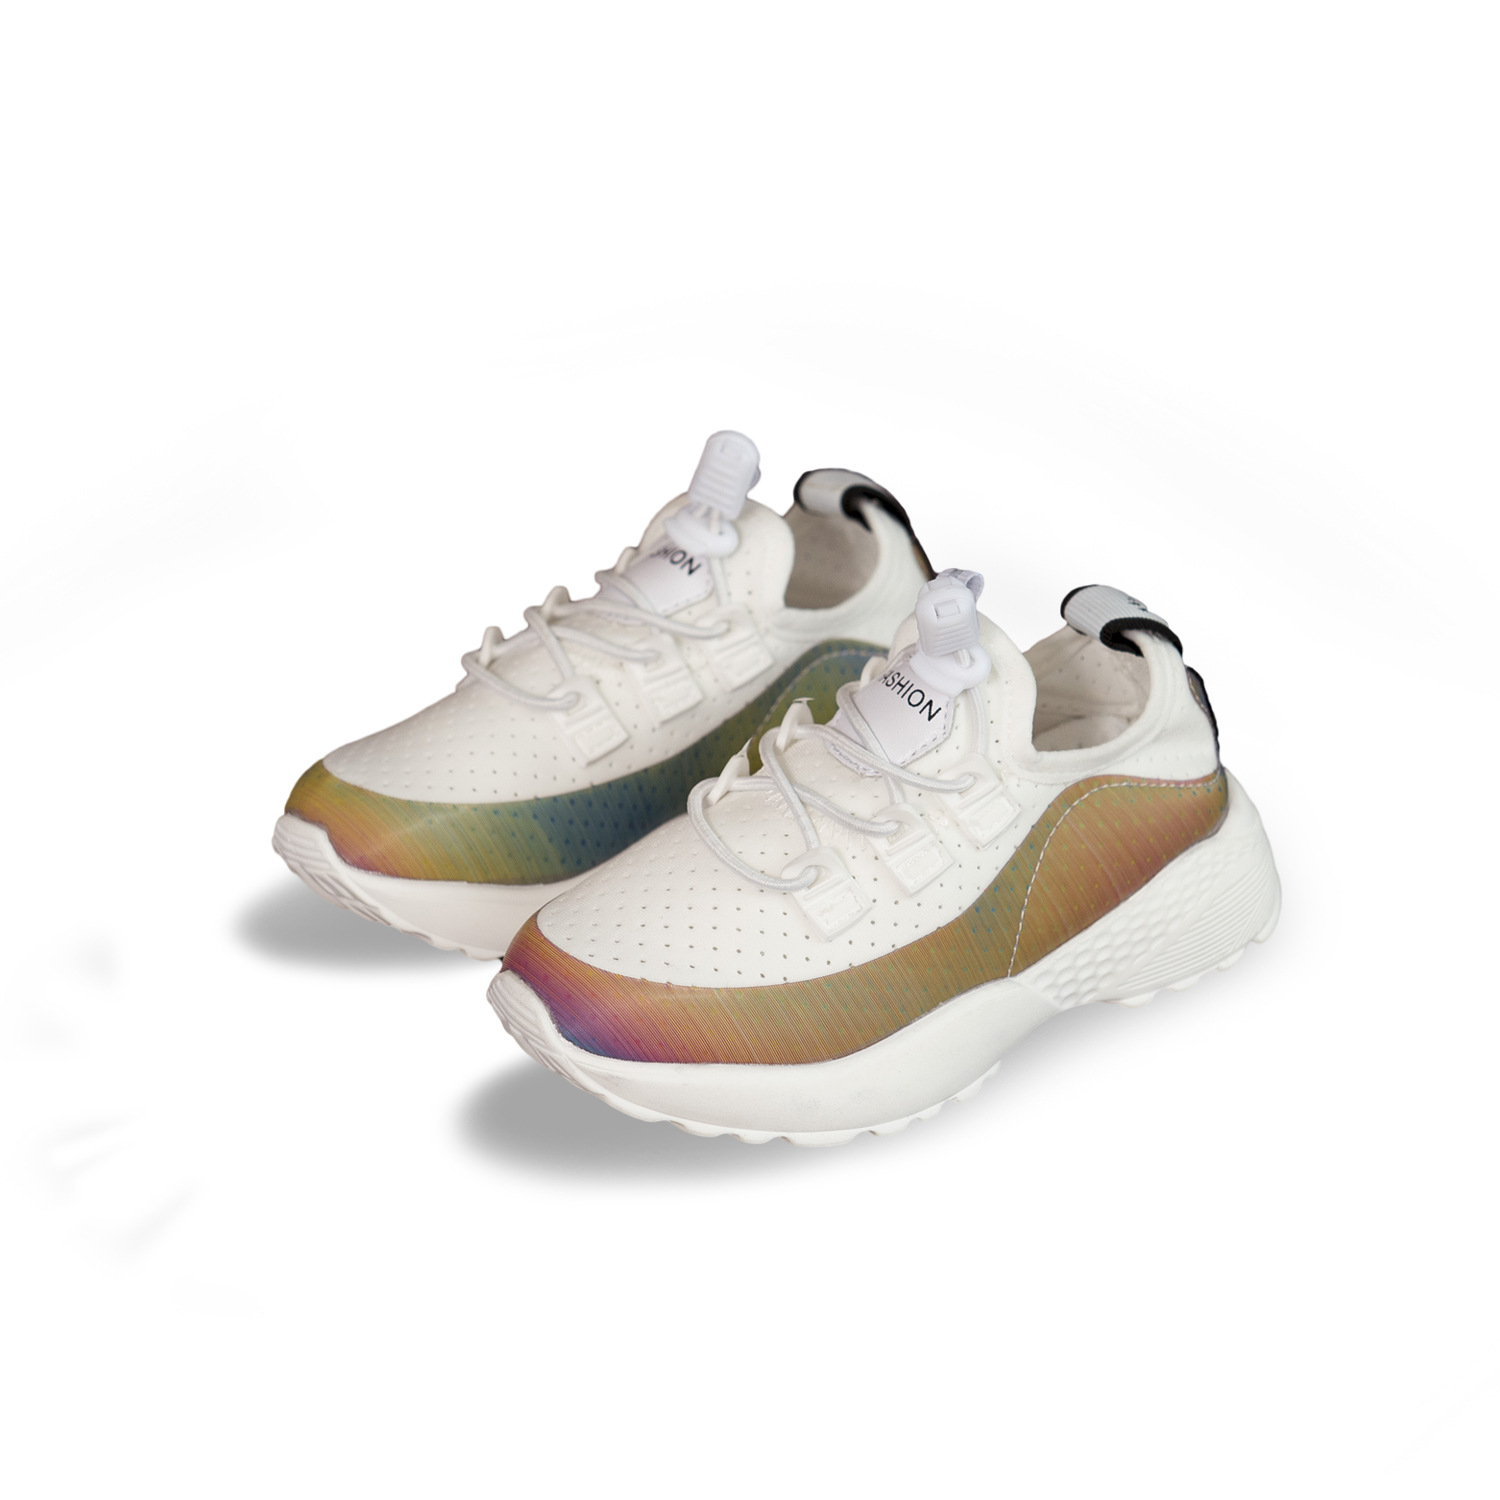 Kids Shoes Fashion Designed Sneakers Trainers Breathable Sports Shoes Boys Girls School Shoes